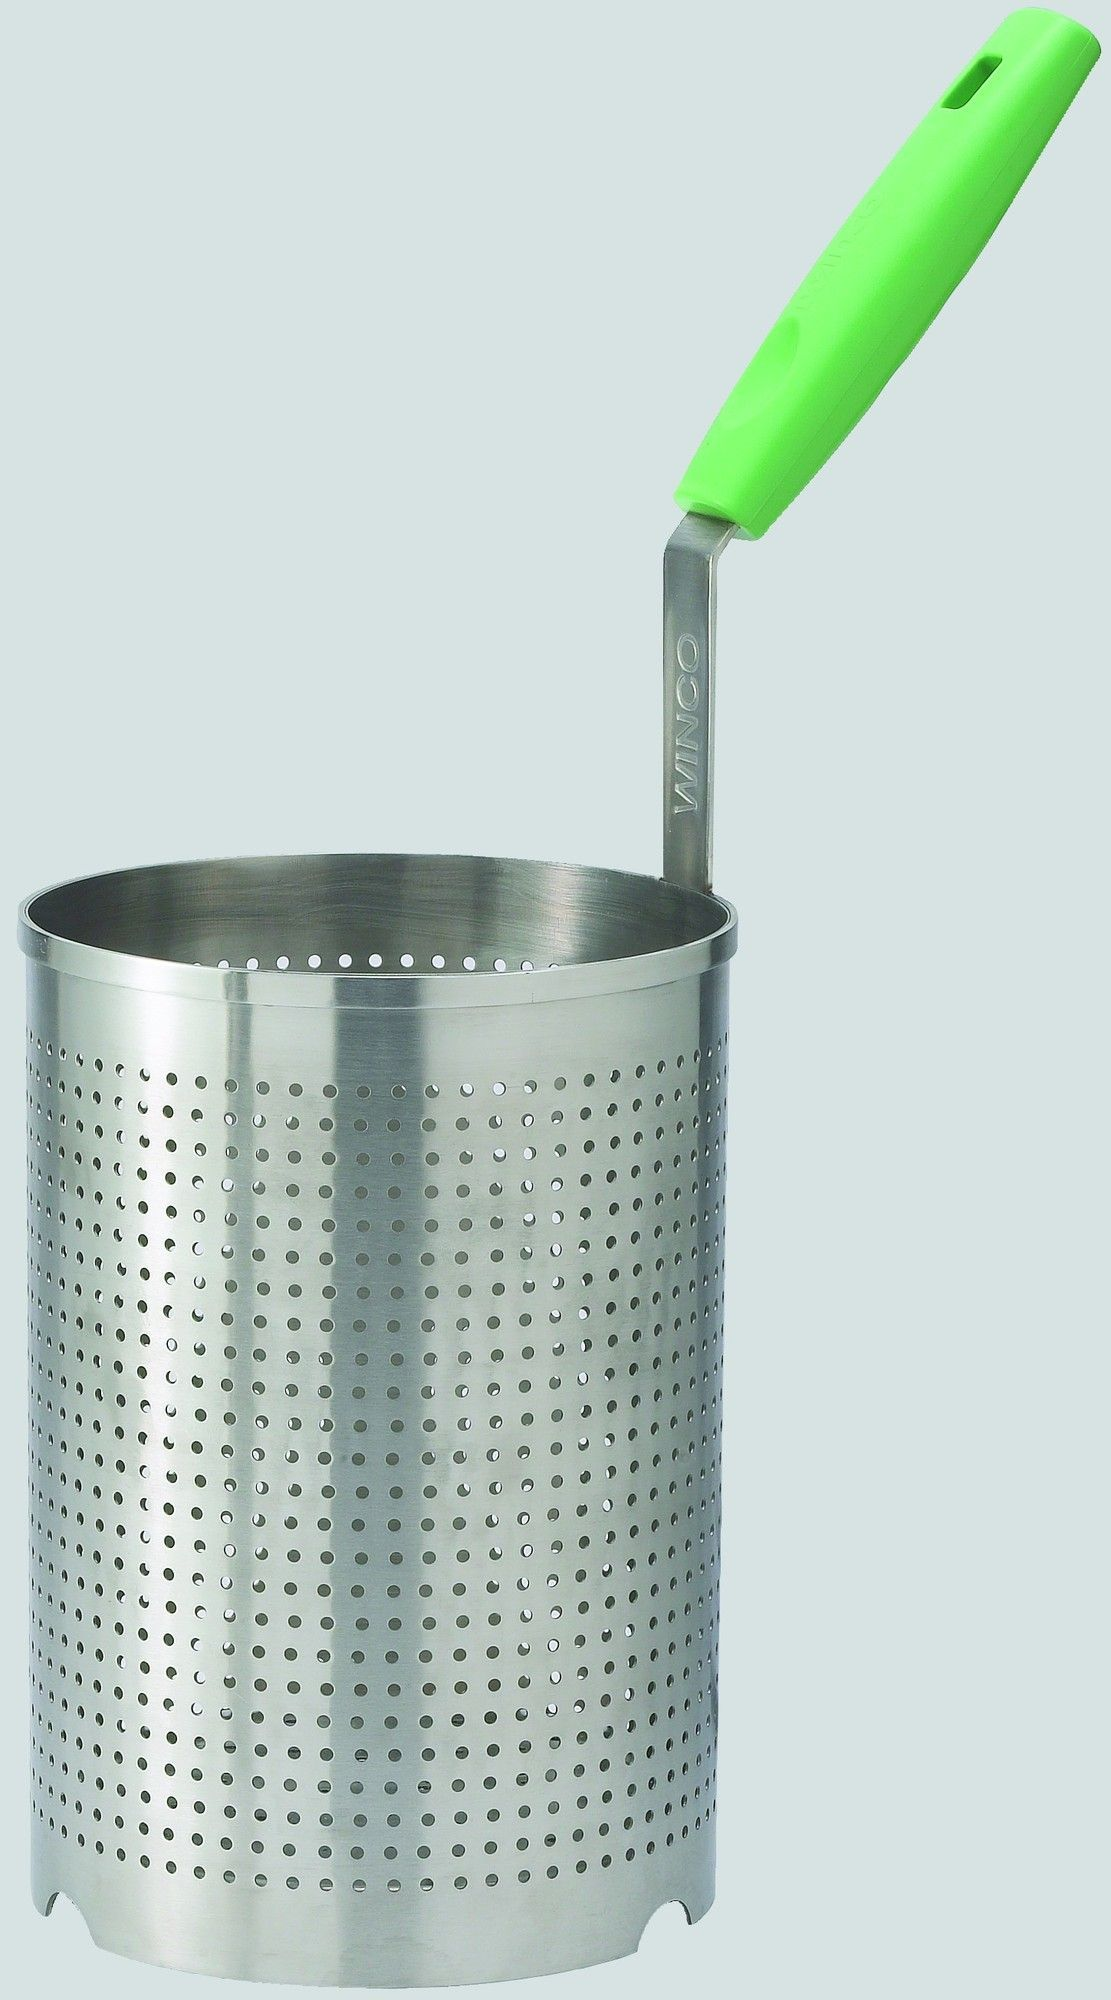 Connoisseur Pasta Strainer Pasta Strainer Pasta Cookers Basket